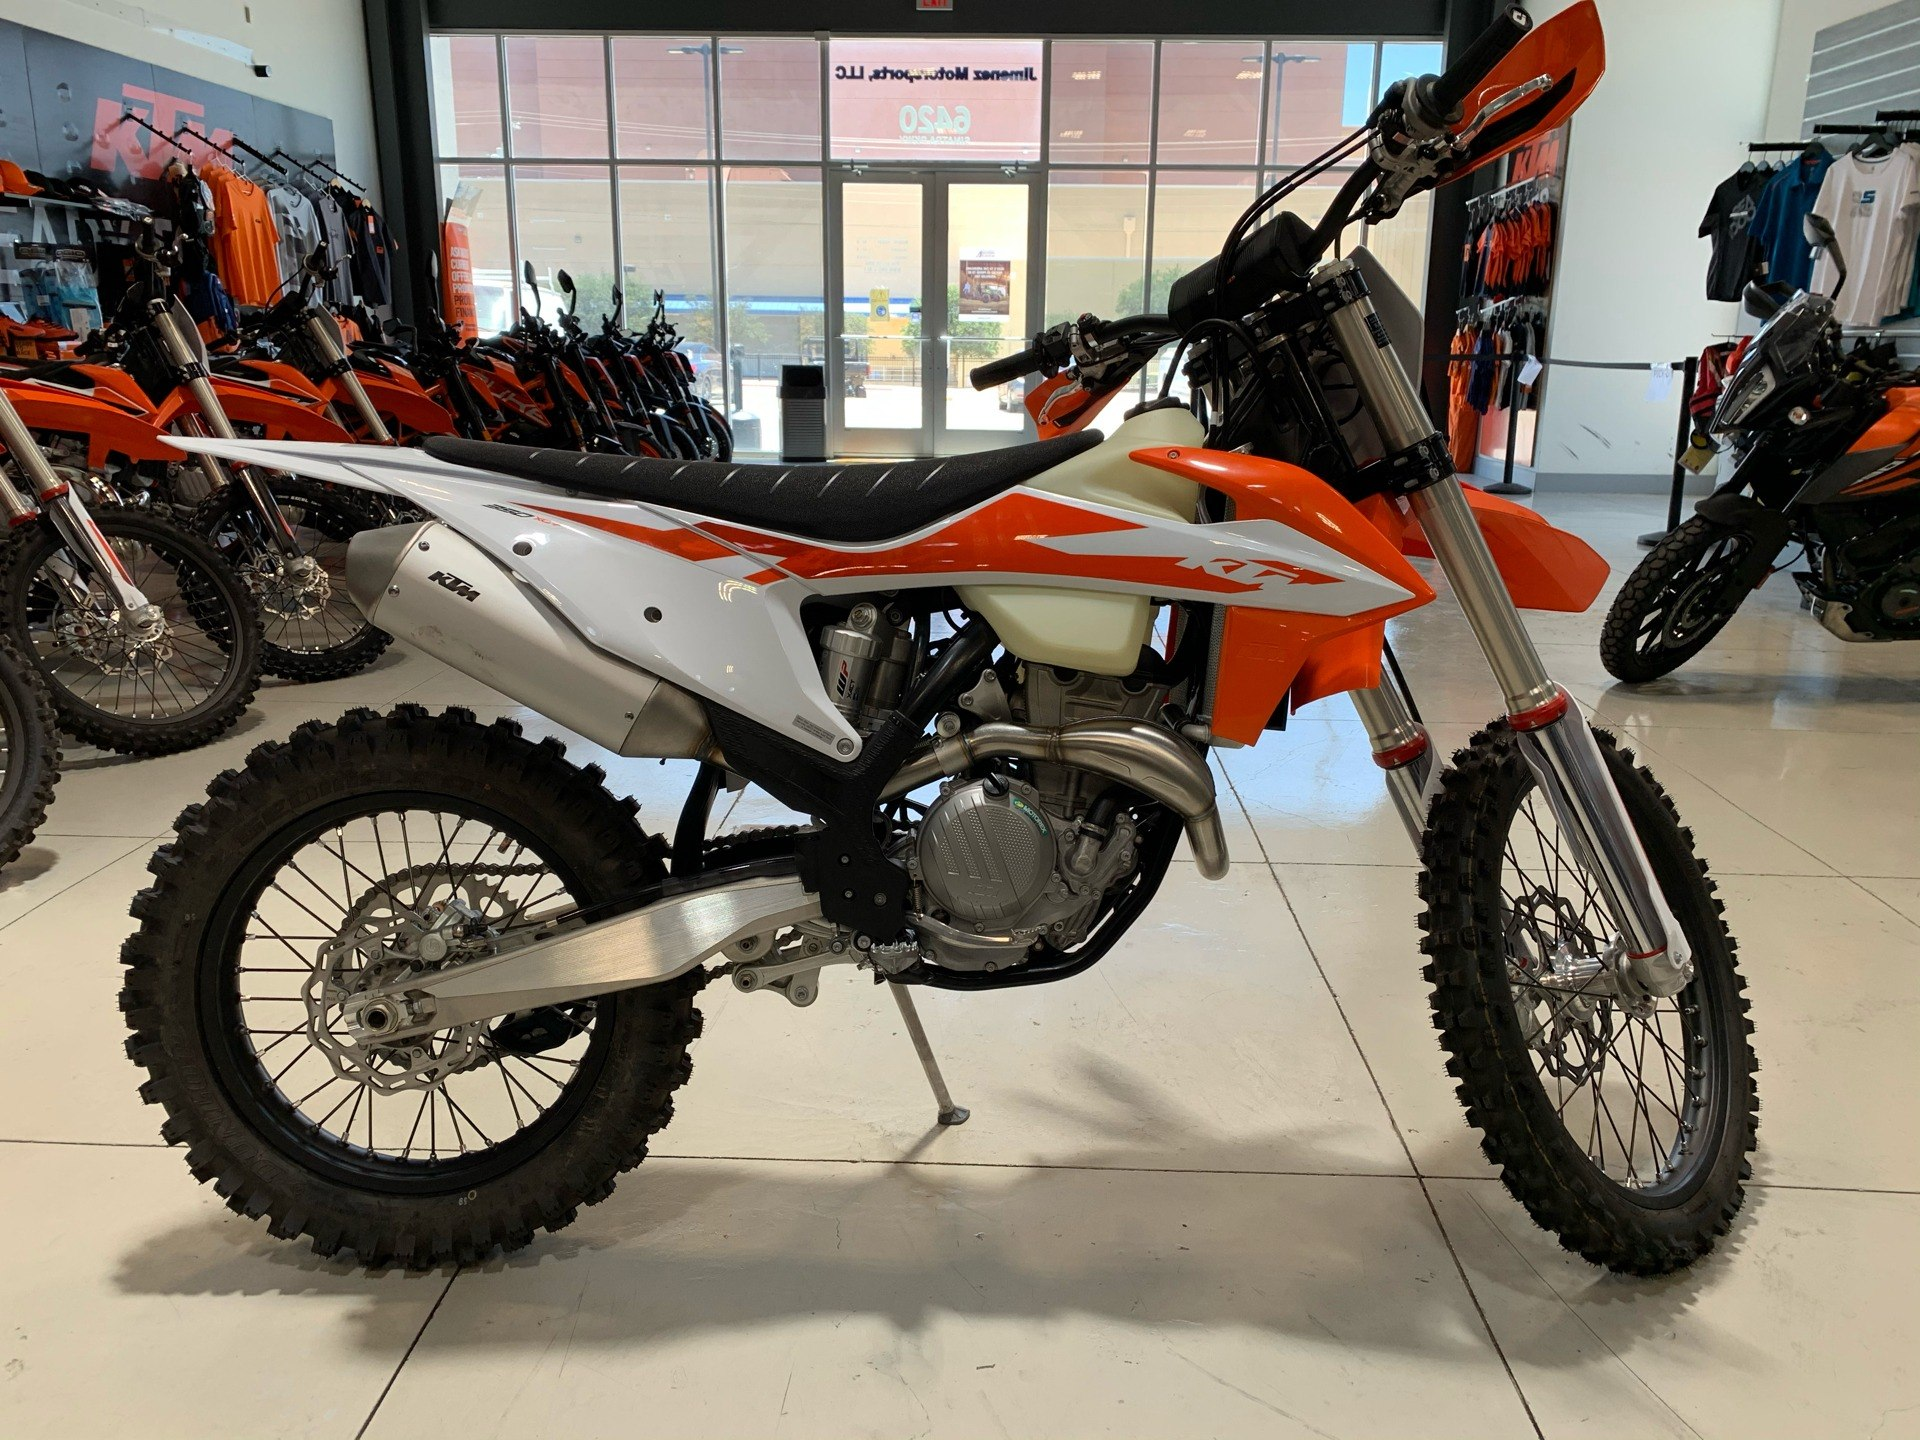 2020 KTM 350 XC-F in Laredo, Texas - Photo 2